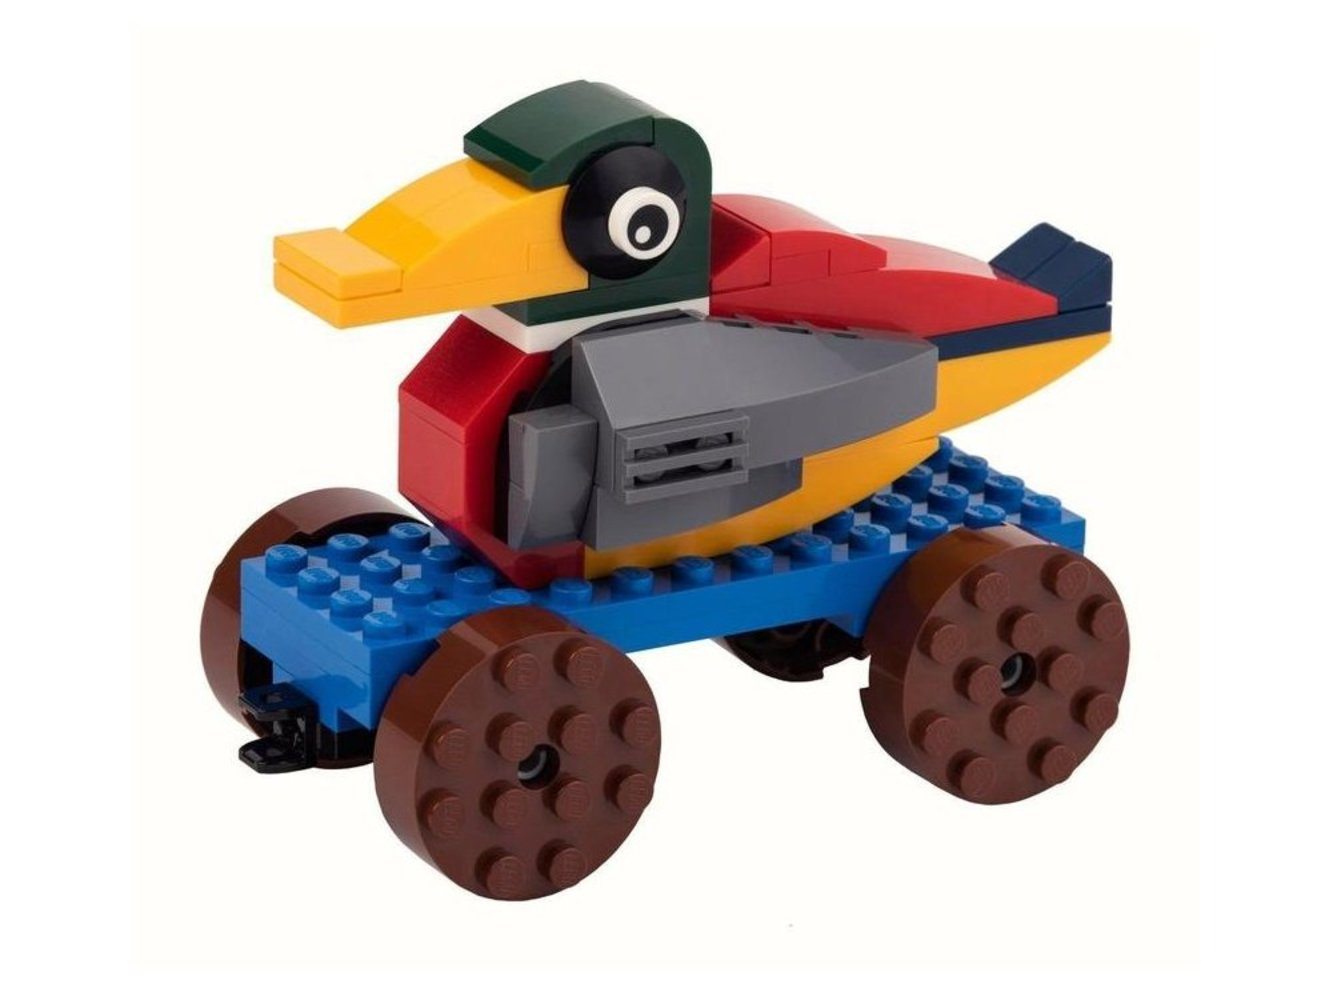 60th Anniversary Classic Wooden Duck